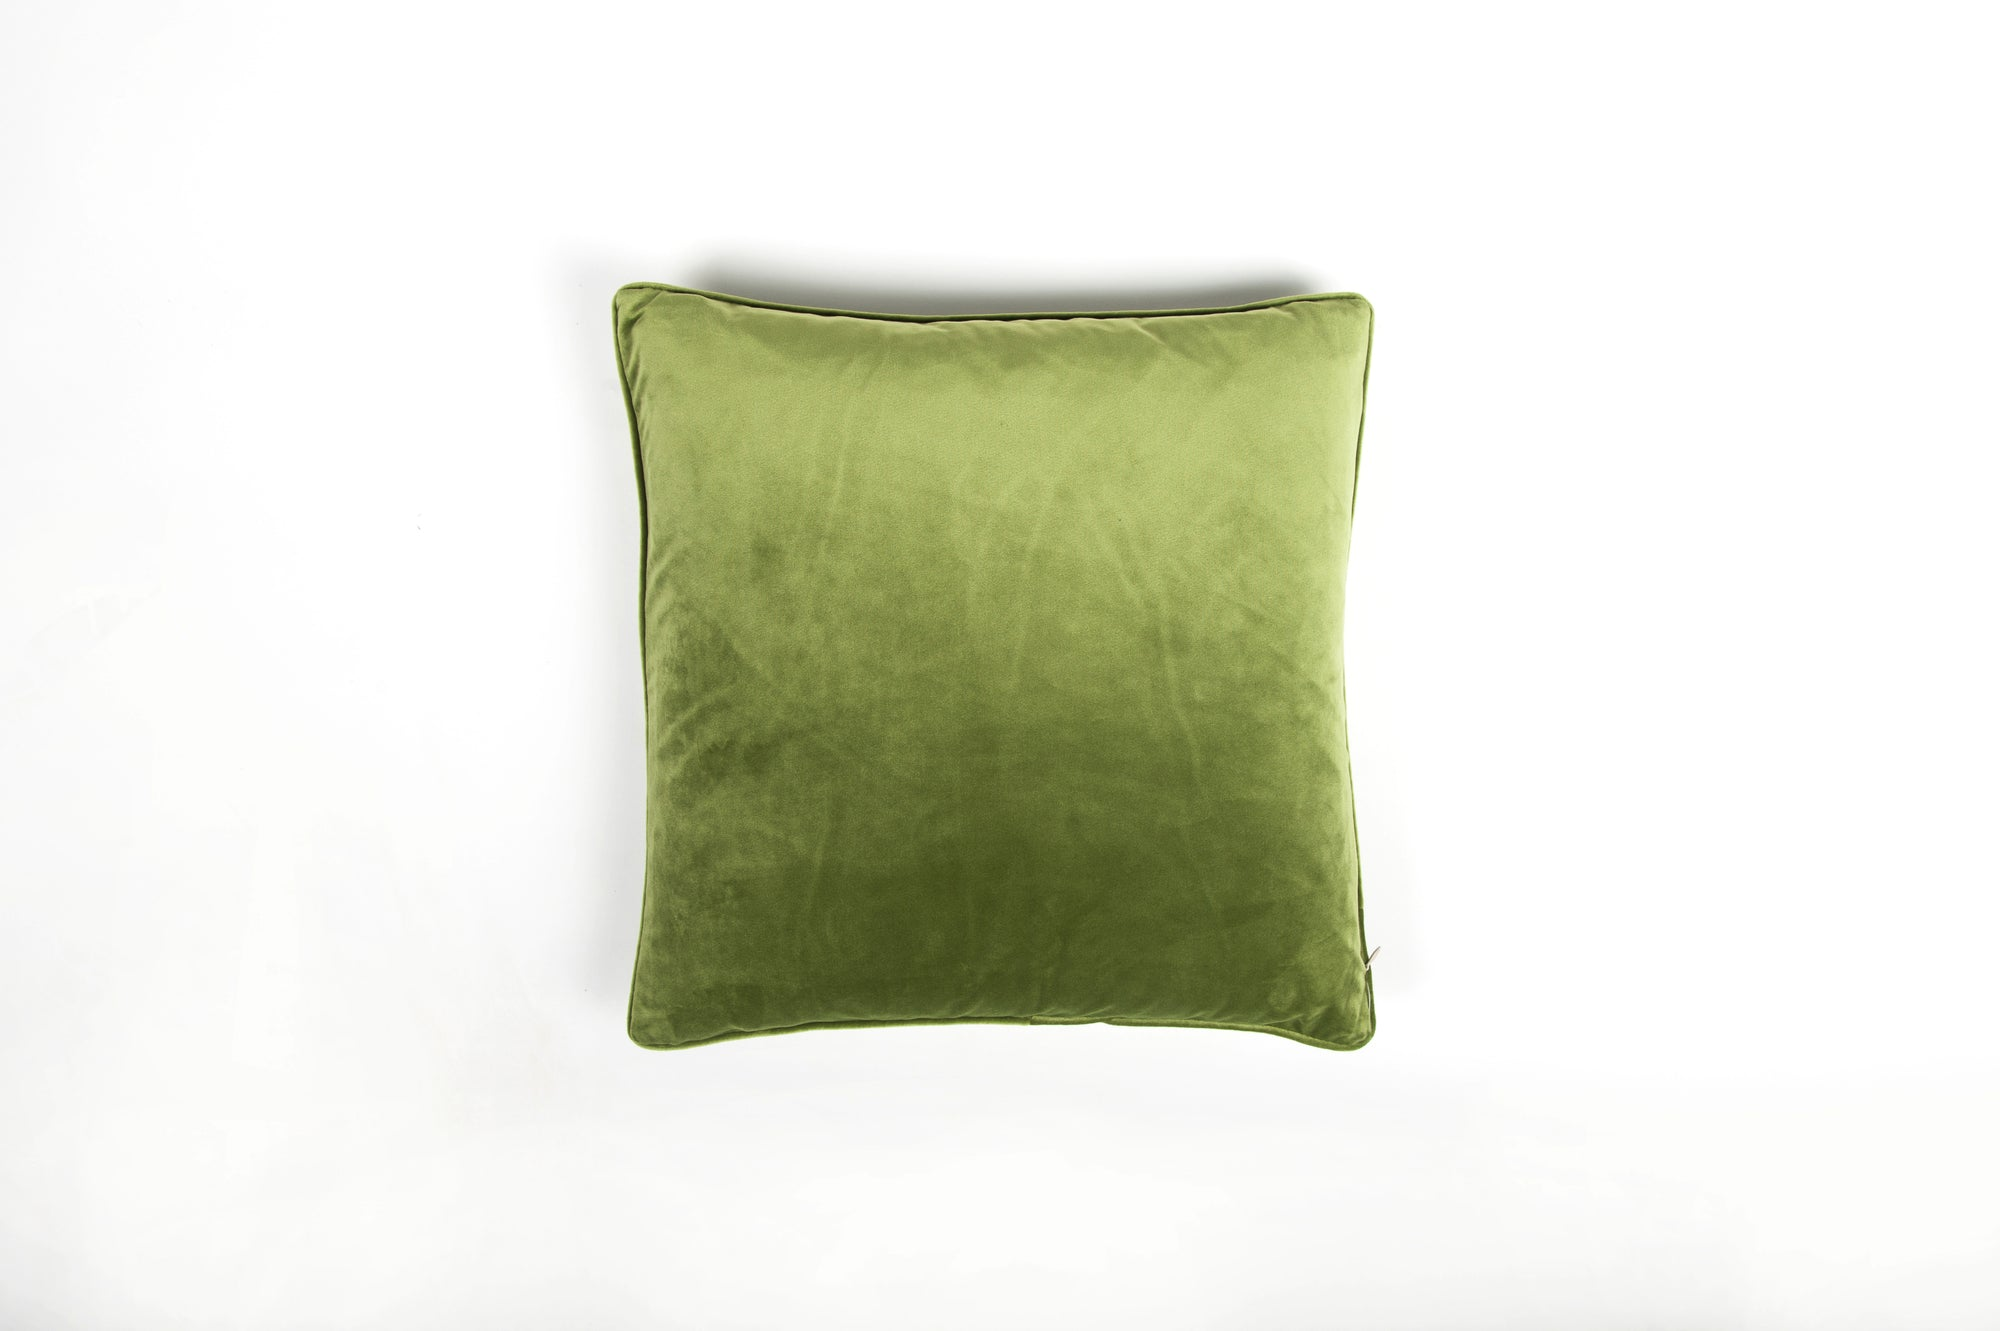 Velvet Moss Green Piped Cushion - Fervor + Hue